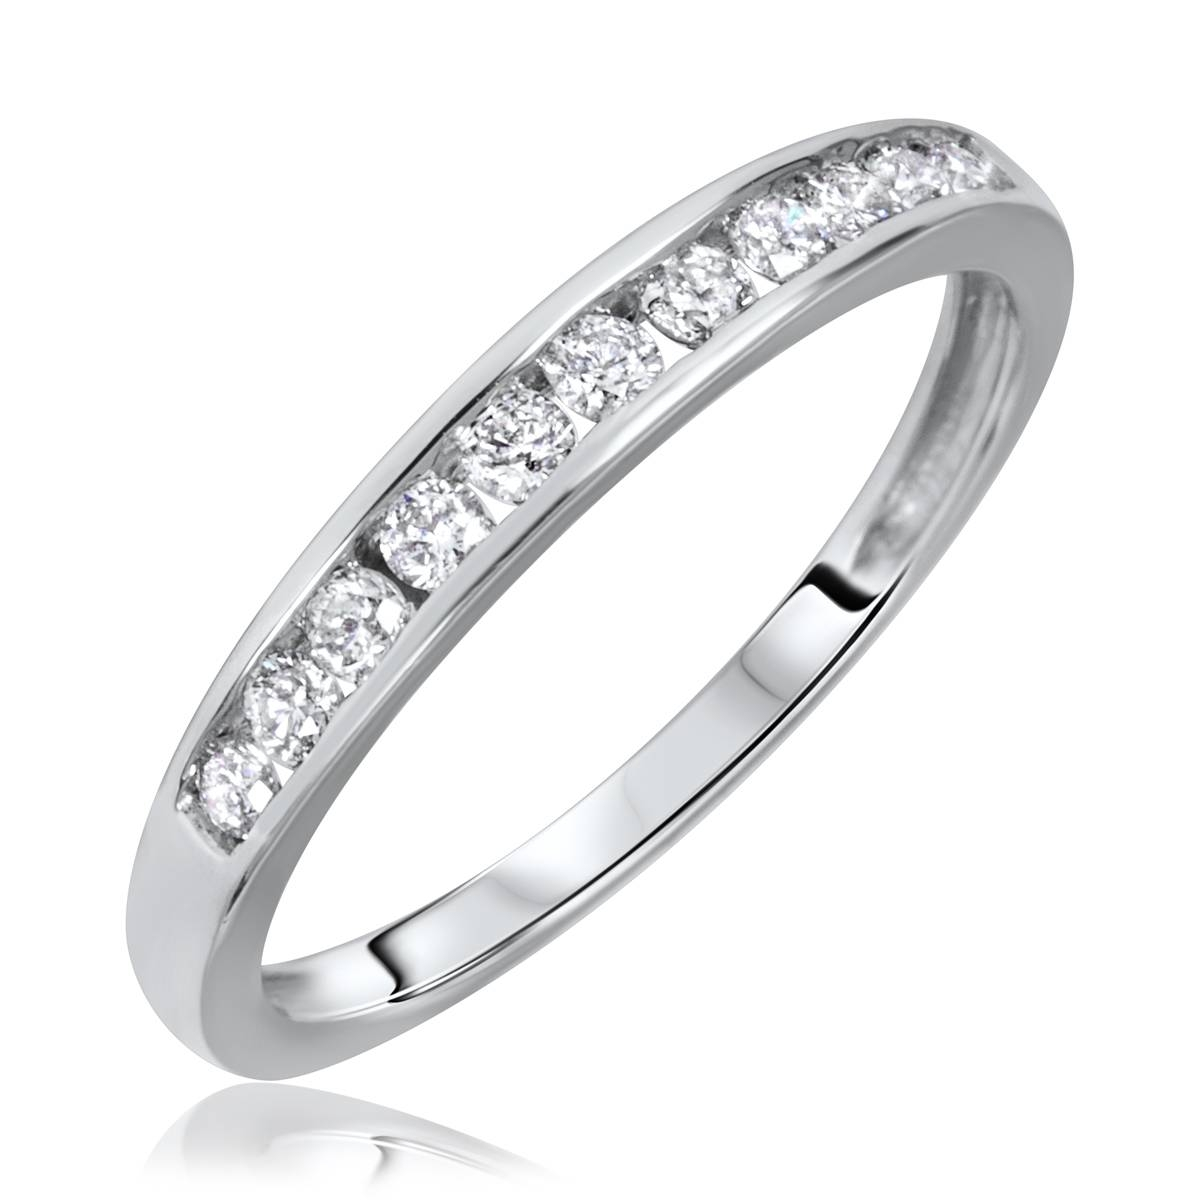 1/2 Carat T.w. Round Cut Diamond His And Hers Wedding Band Set 14K Pertaining To 1 Carat Wedding Bands (Gallery 15 of 15)